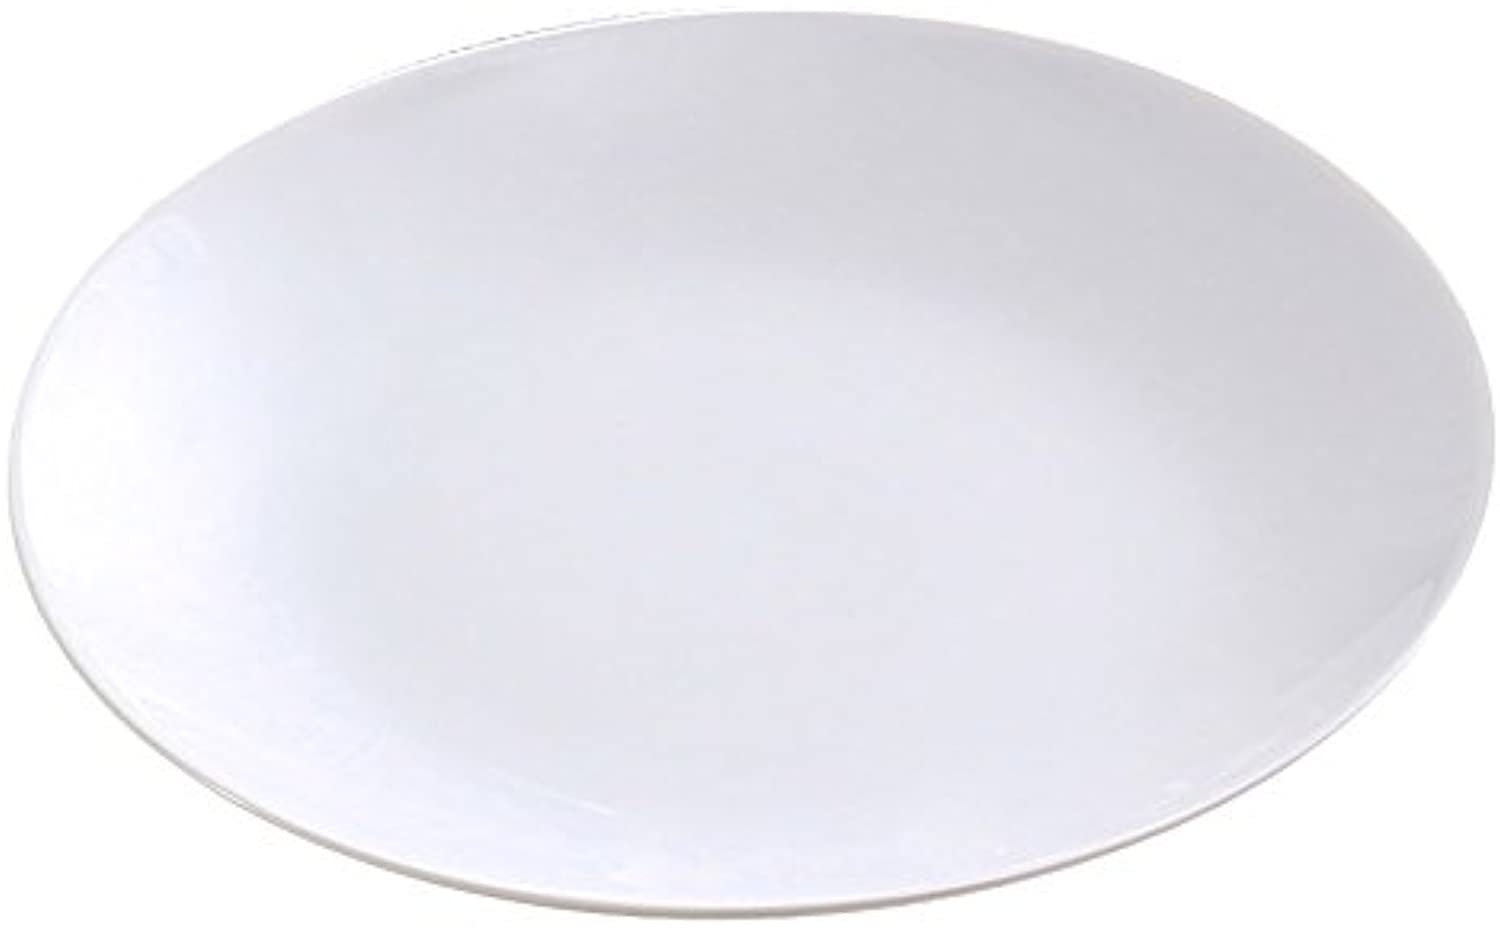 Yanco AC-16-C ABCO 16  Coupe Plate, Porcelain, Super White, Pack of 3